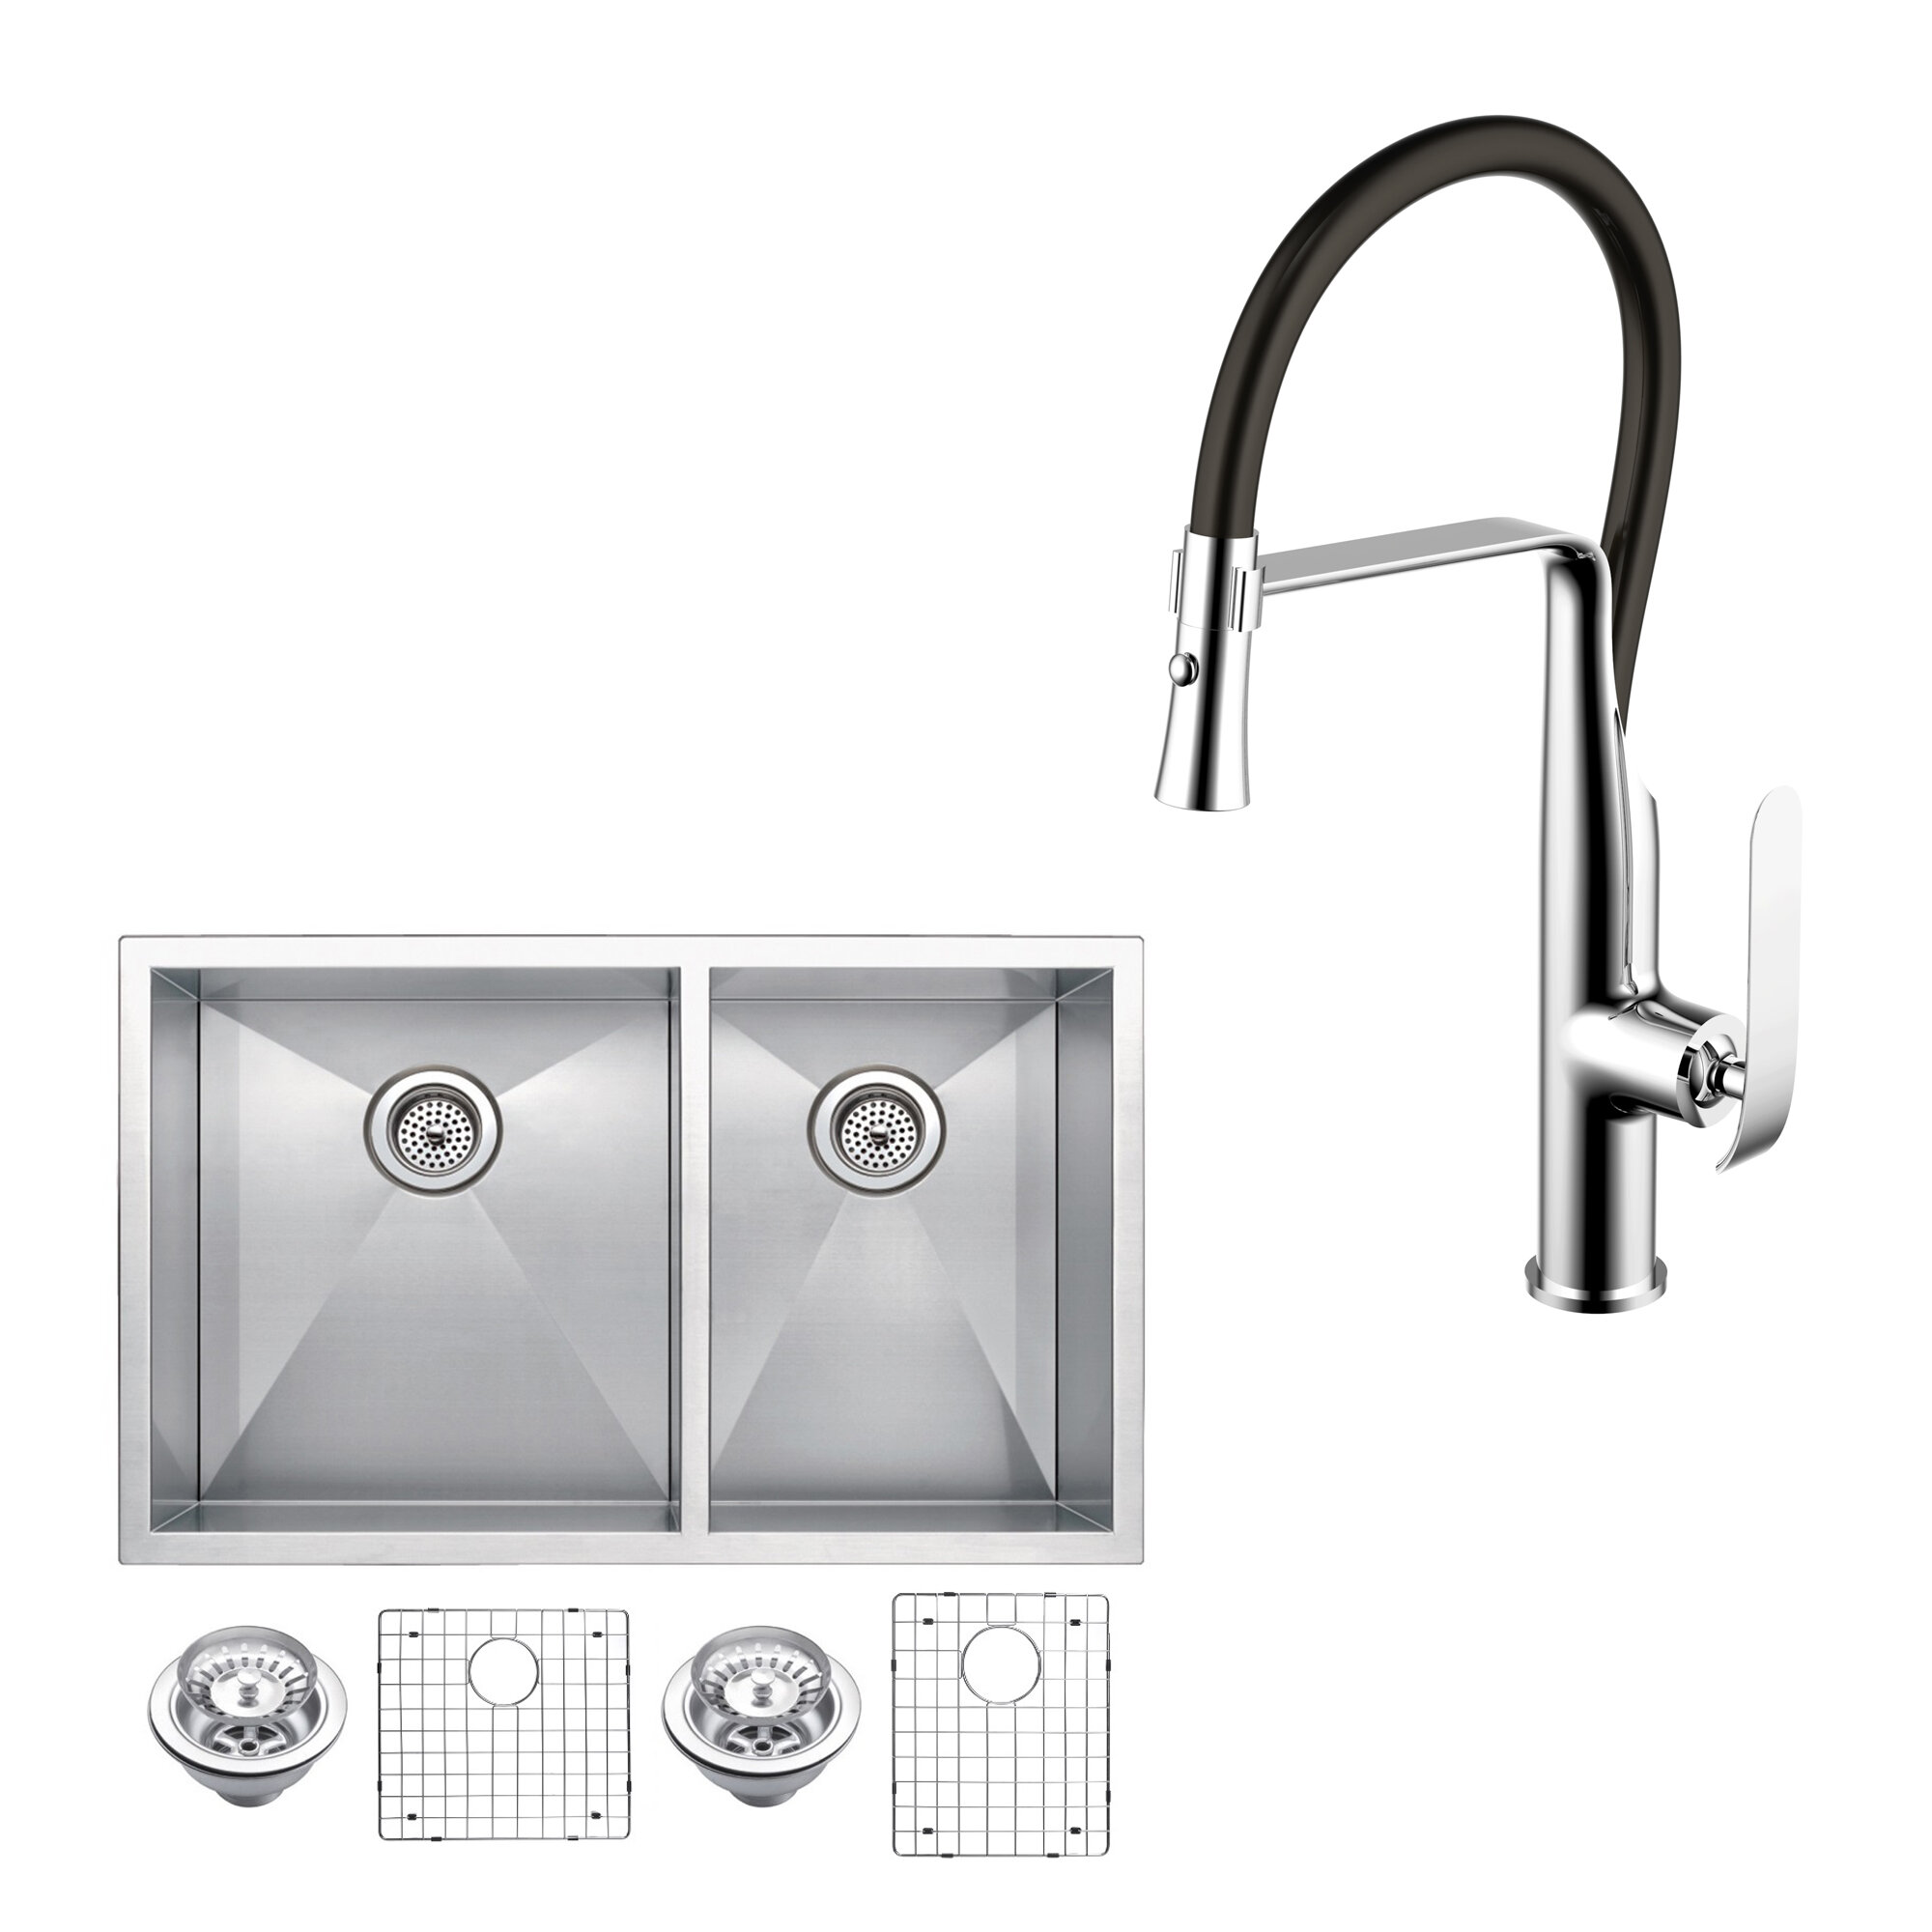 dcor design all in one stainless steel 33   x 20   double basin undermount kitchen sink with faucet  u0026 reviews   wayfair dcor design all in one stainless steel 33   x 20   double basin      rh   wayfair com